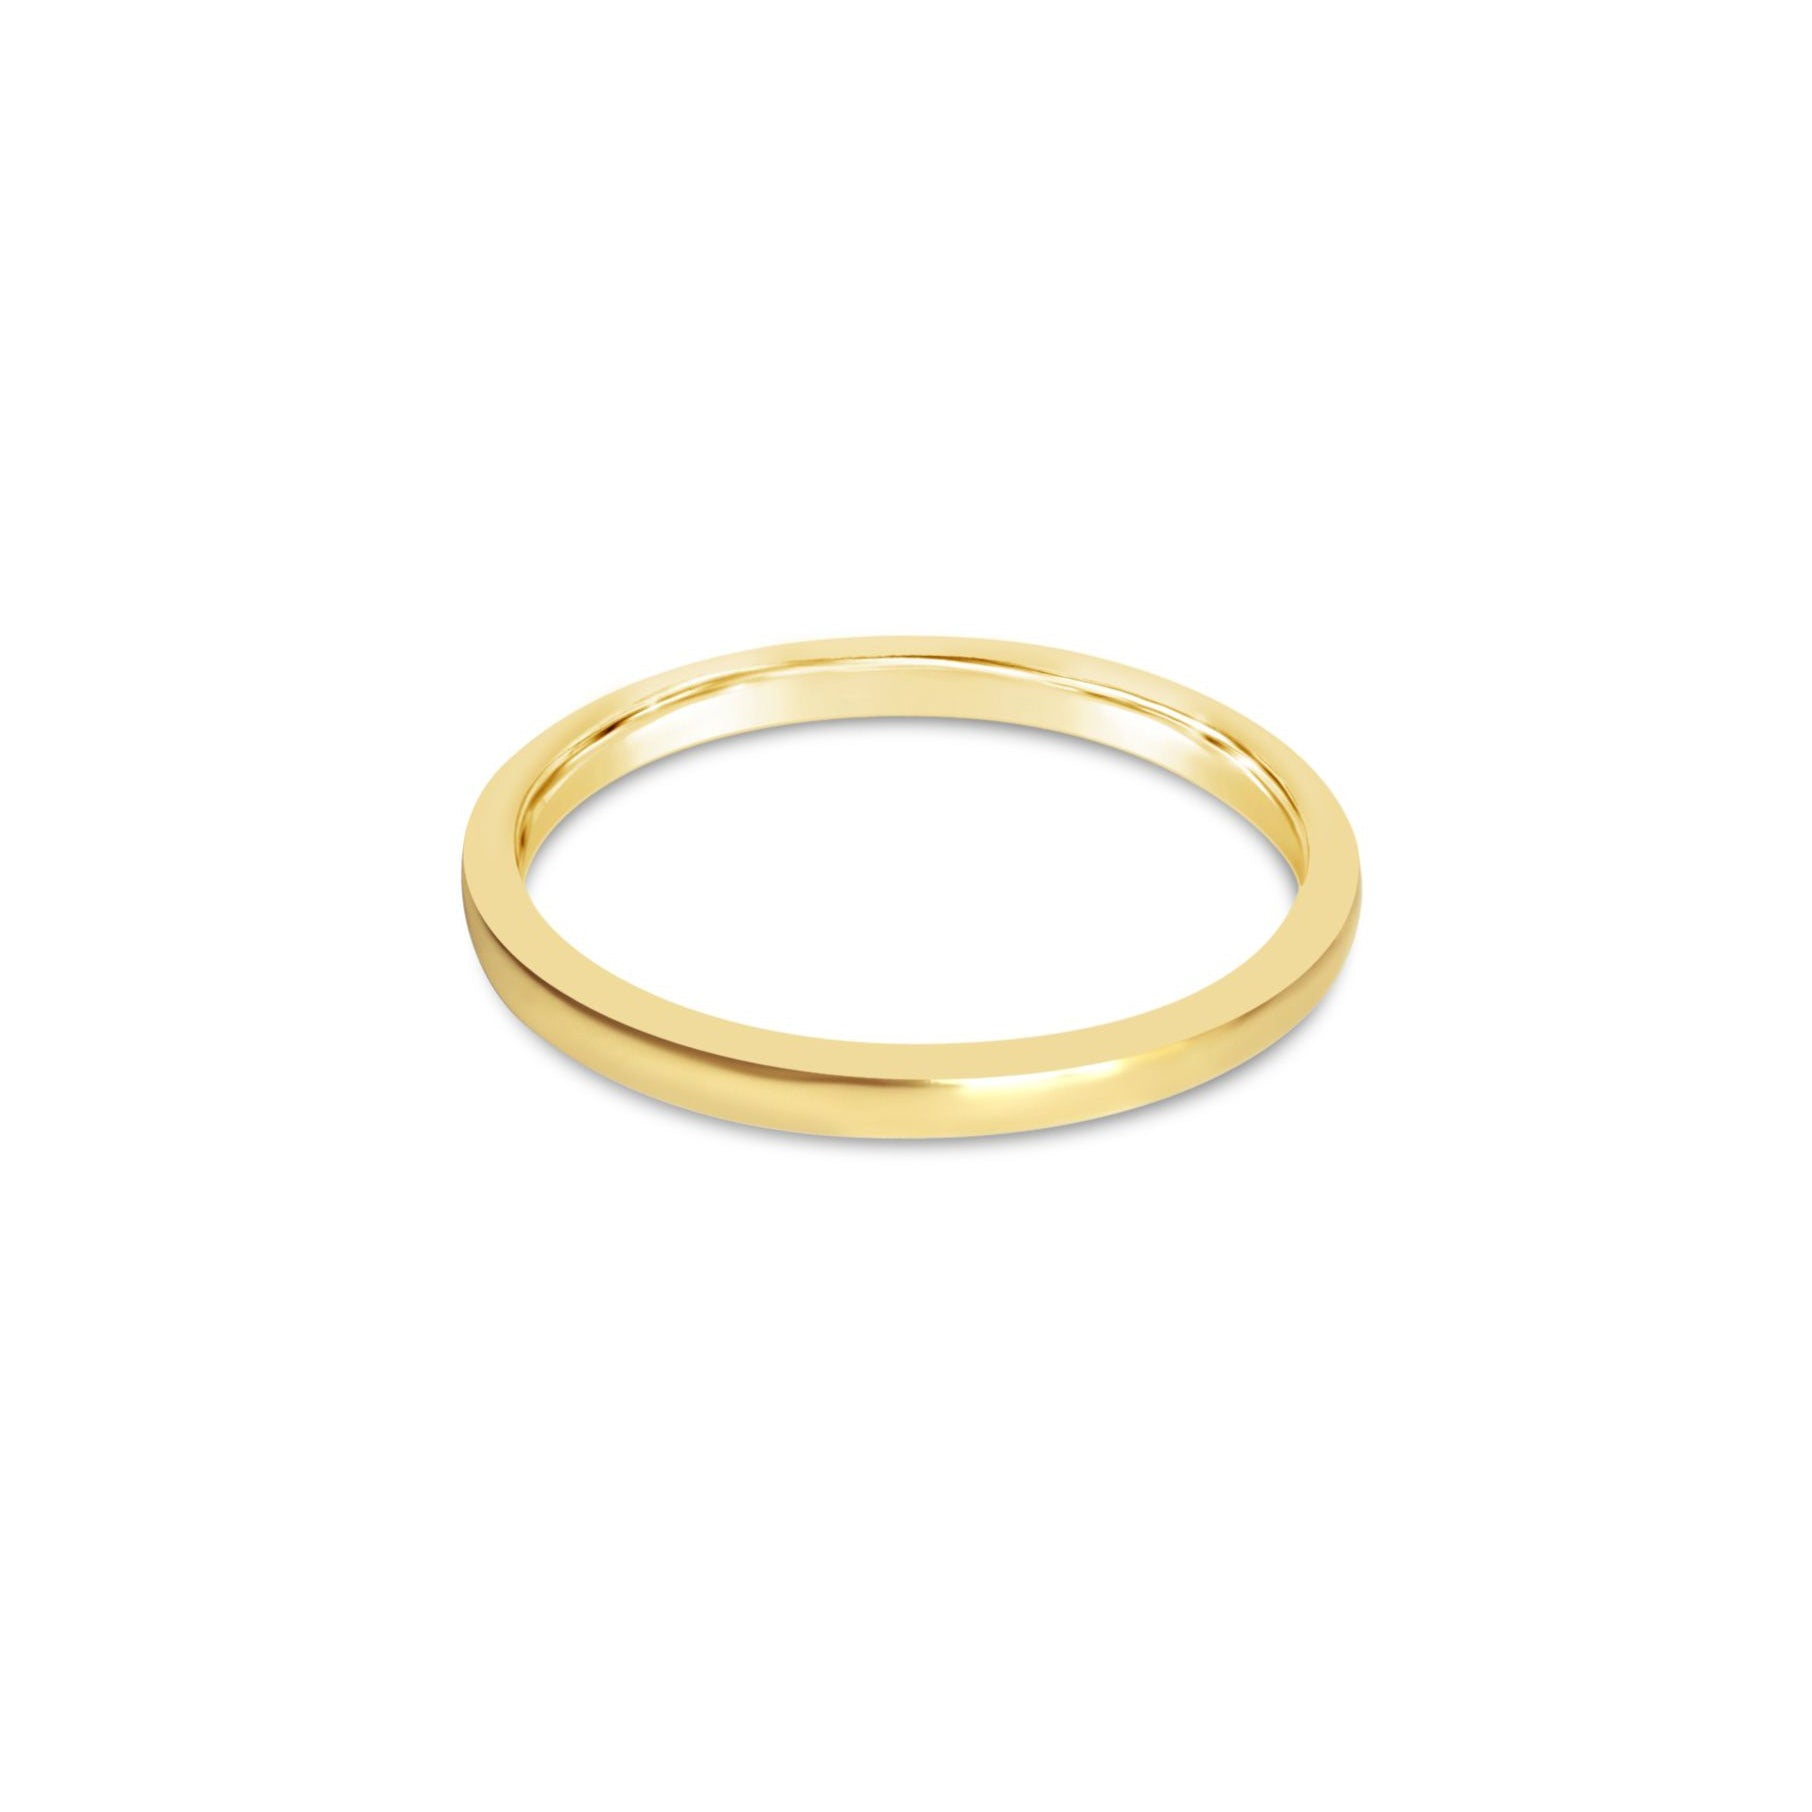 AMOUR delicate gold wedding band ||  AMOUR alliance délicate en or